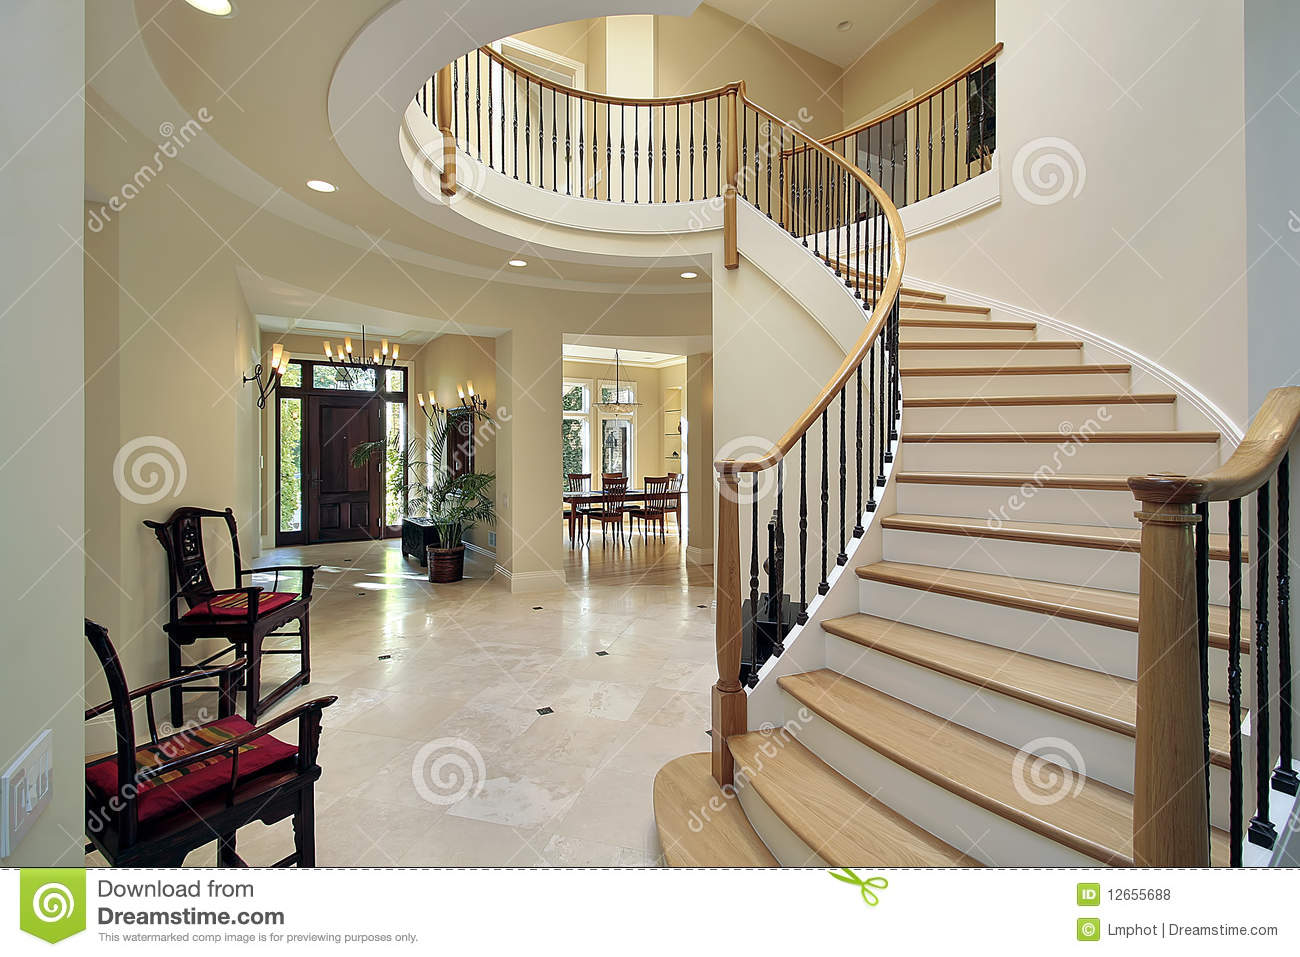 Foyer Clipart : Foyer with curved staircase royalty free stock image